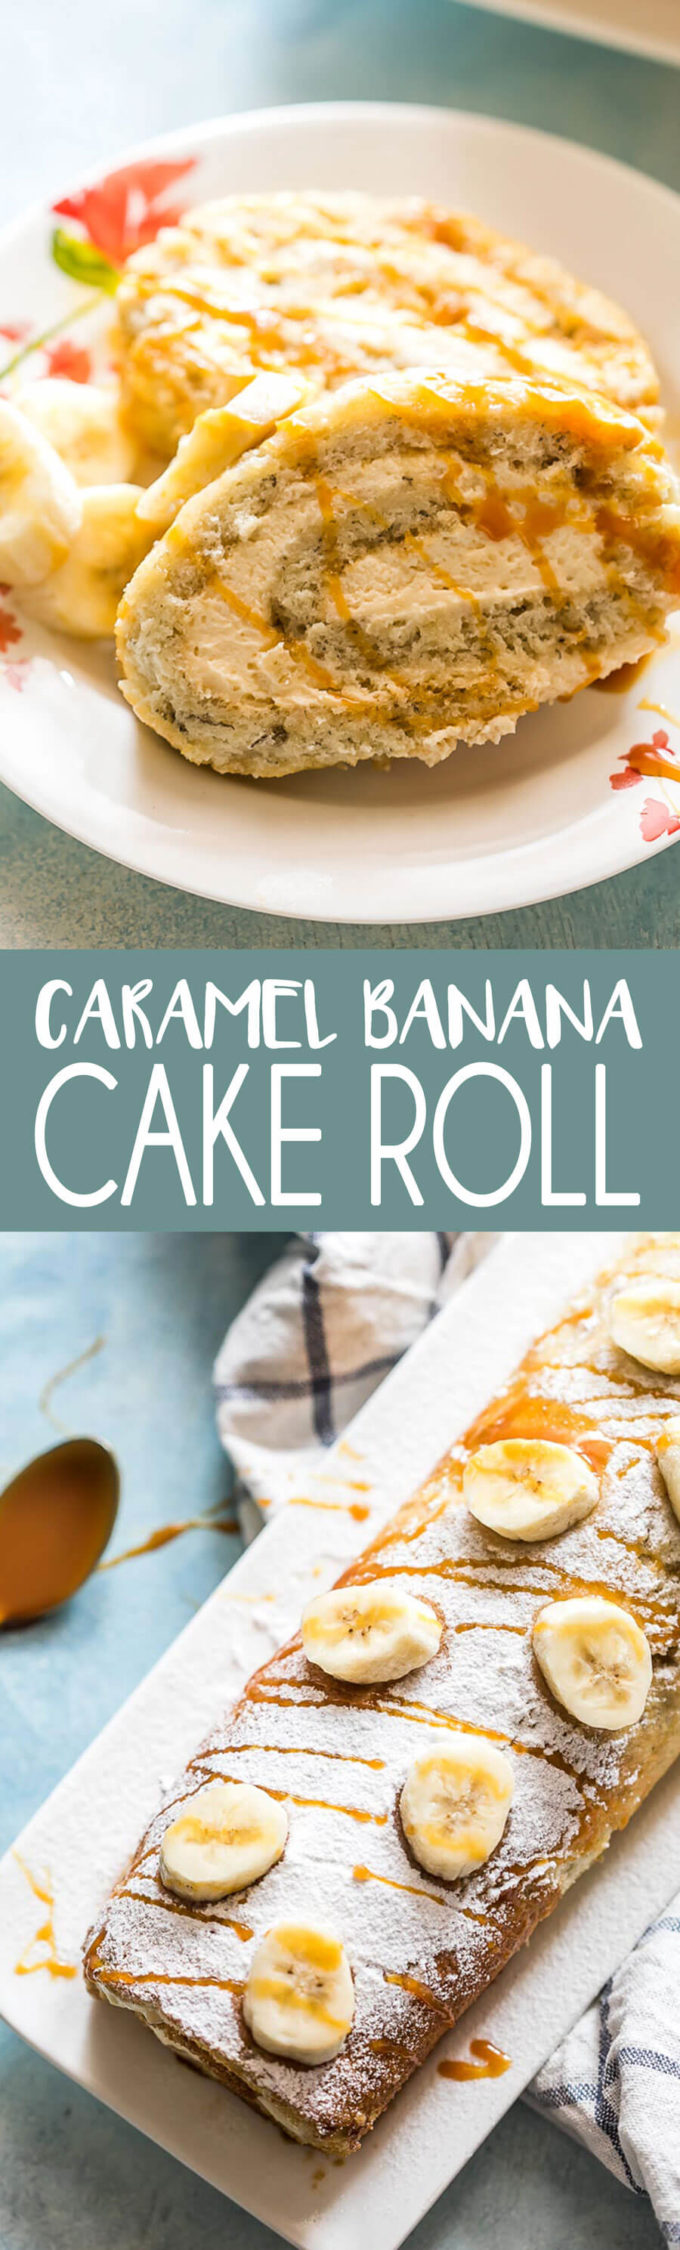 Caramel Banana Cake Roll is a delicious sponge cake filled with a fluffy delicious filling